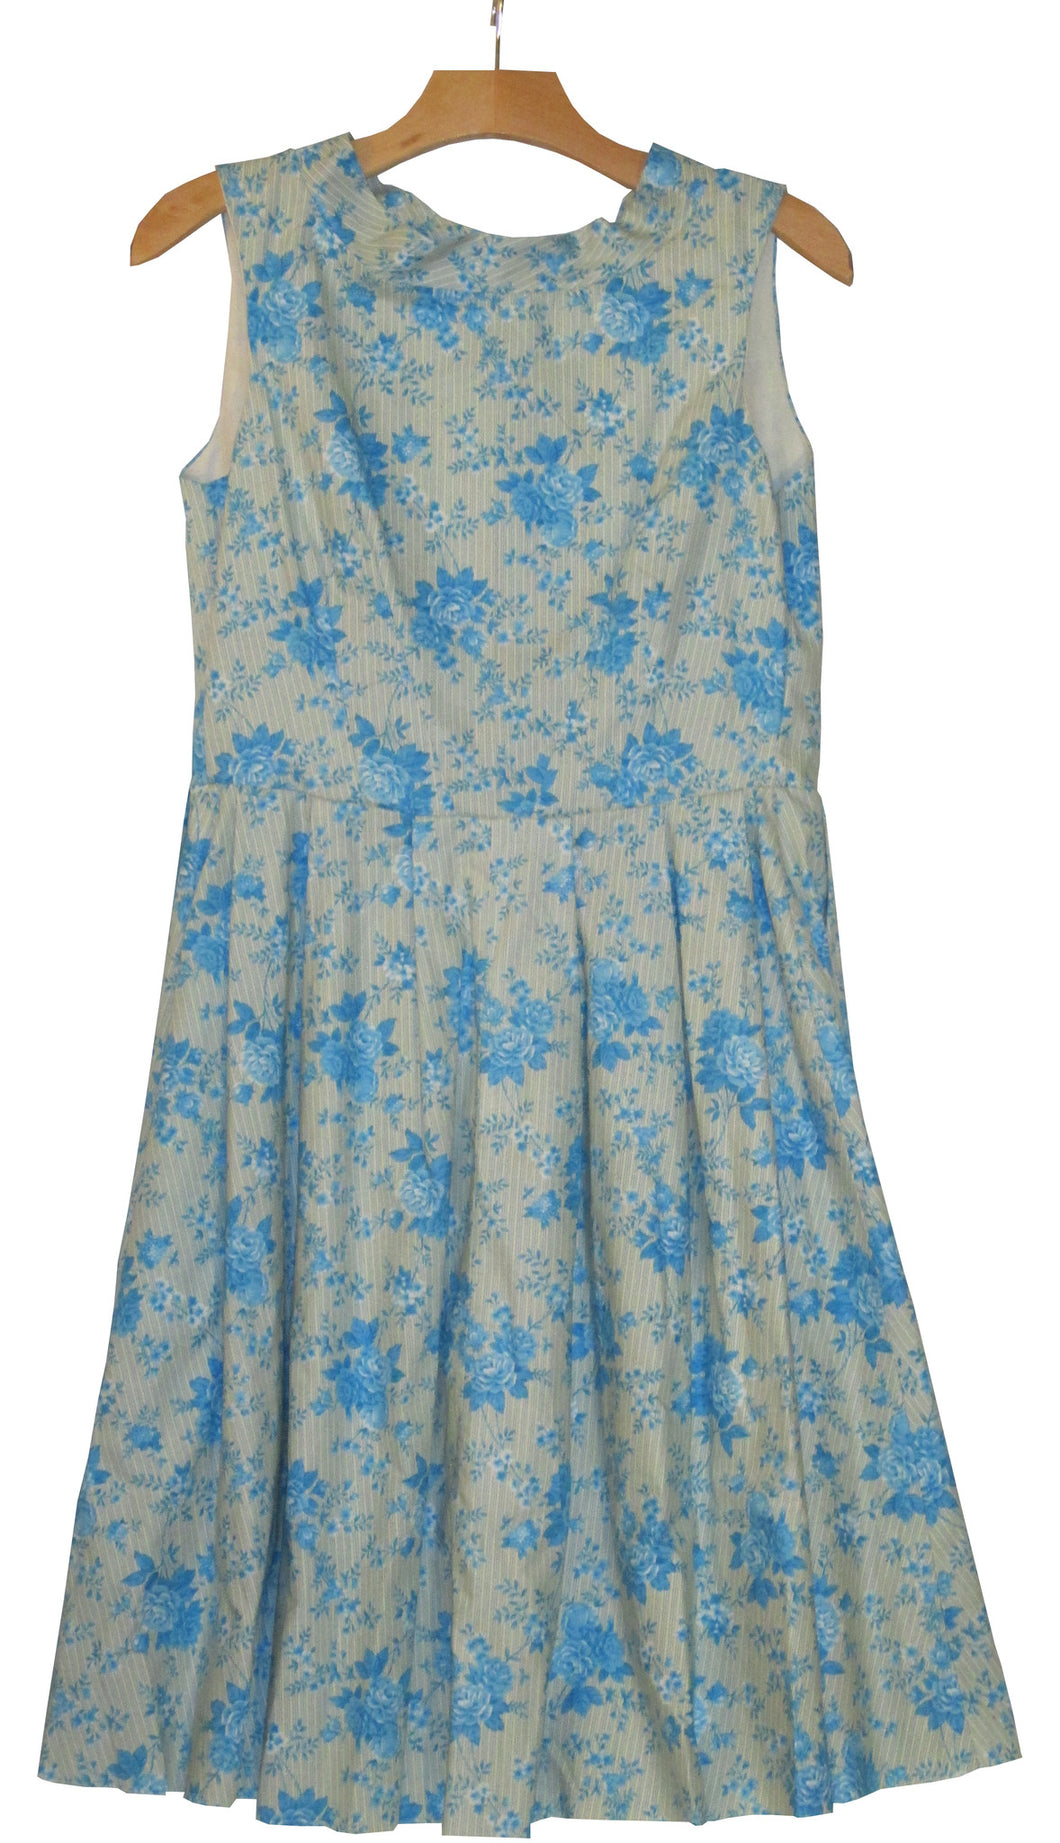 blue flower dress